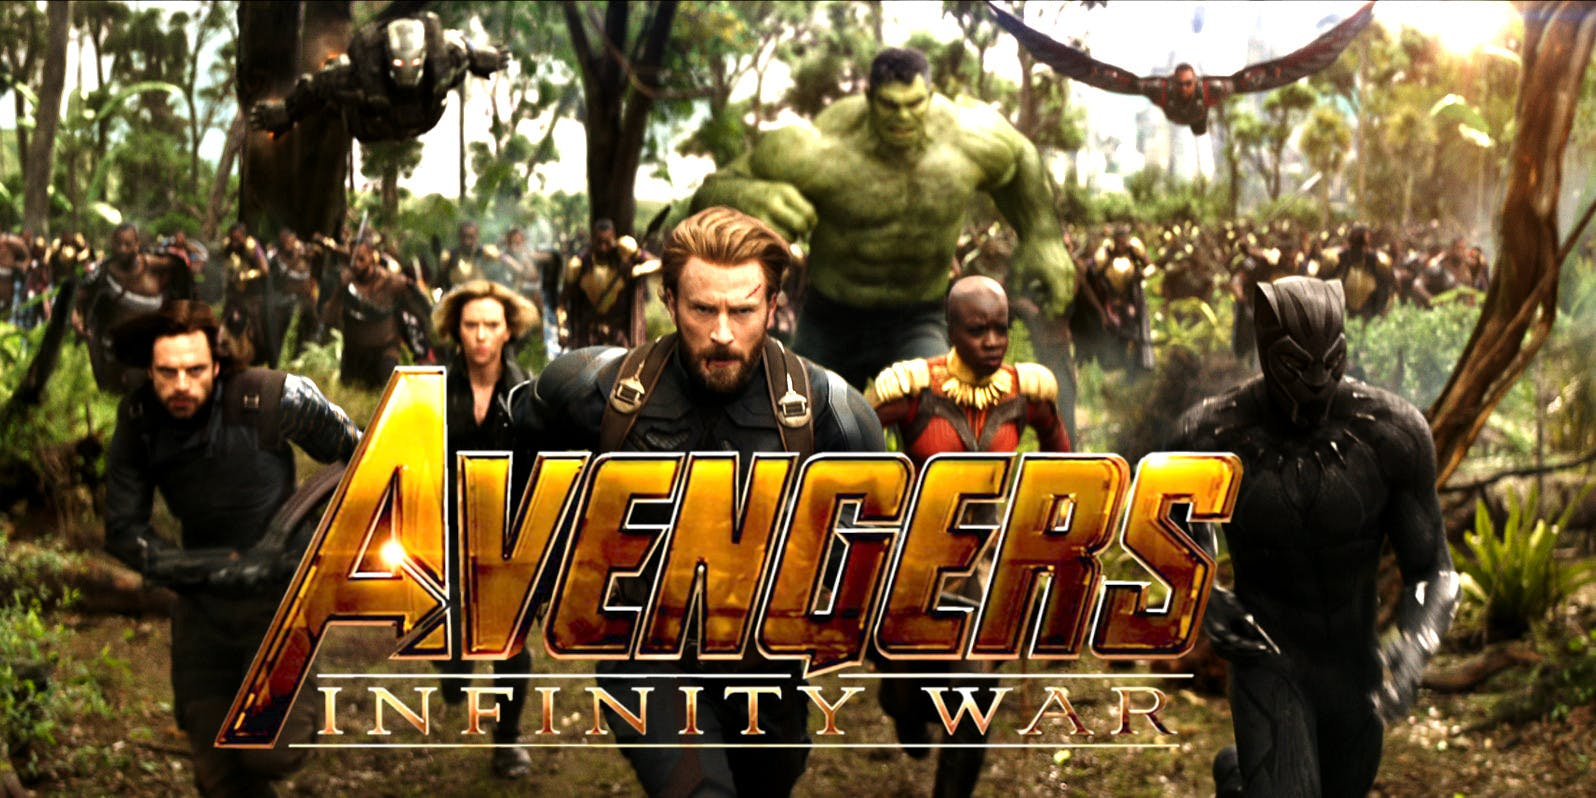 wow movies hd: hbo movie watch avengers: infinity war 2018 full